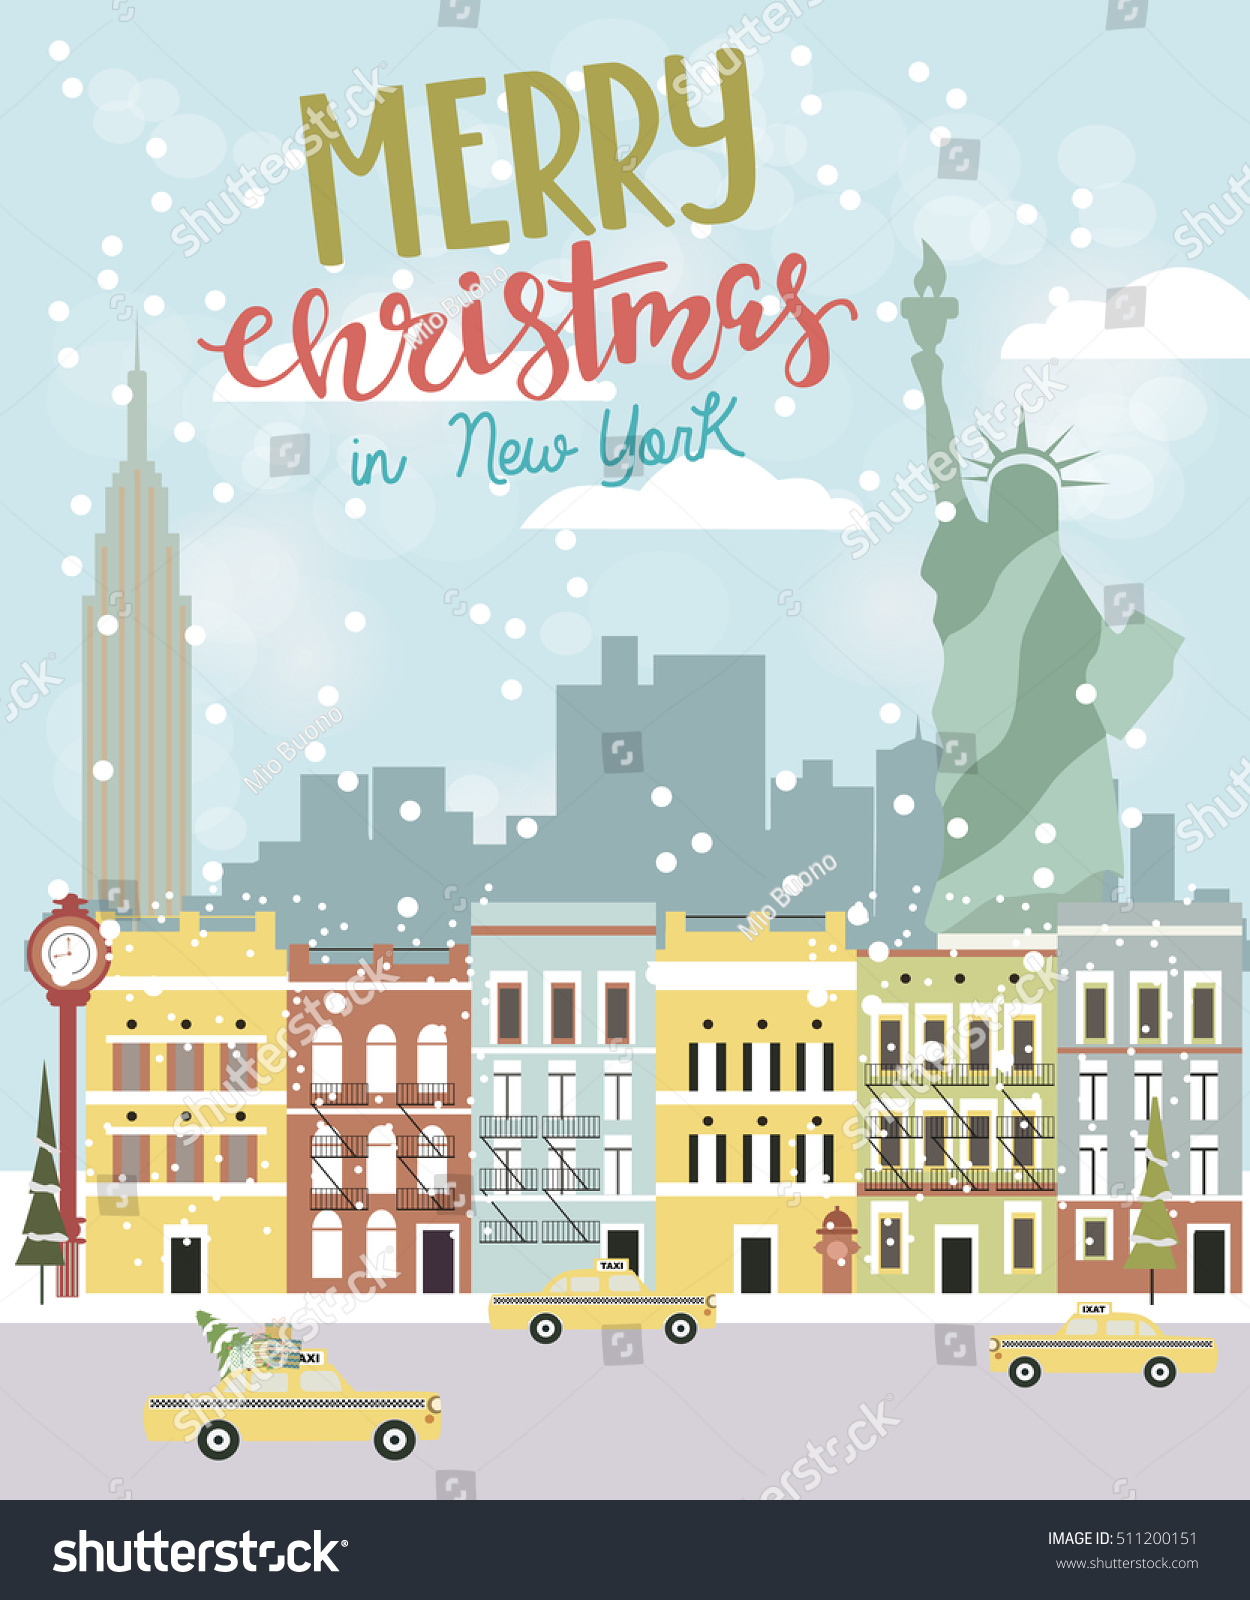 New York Greeting Cards Image collections - greetings formal letter